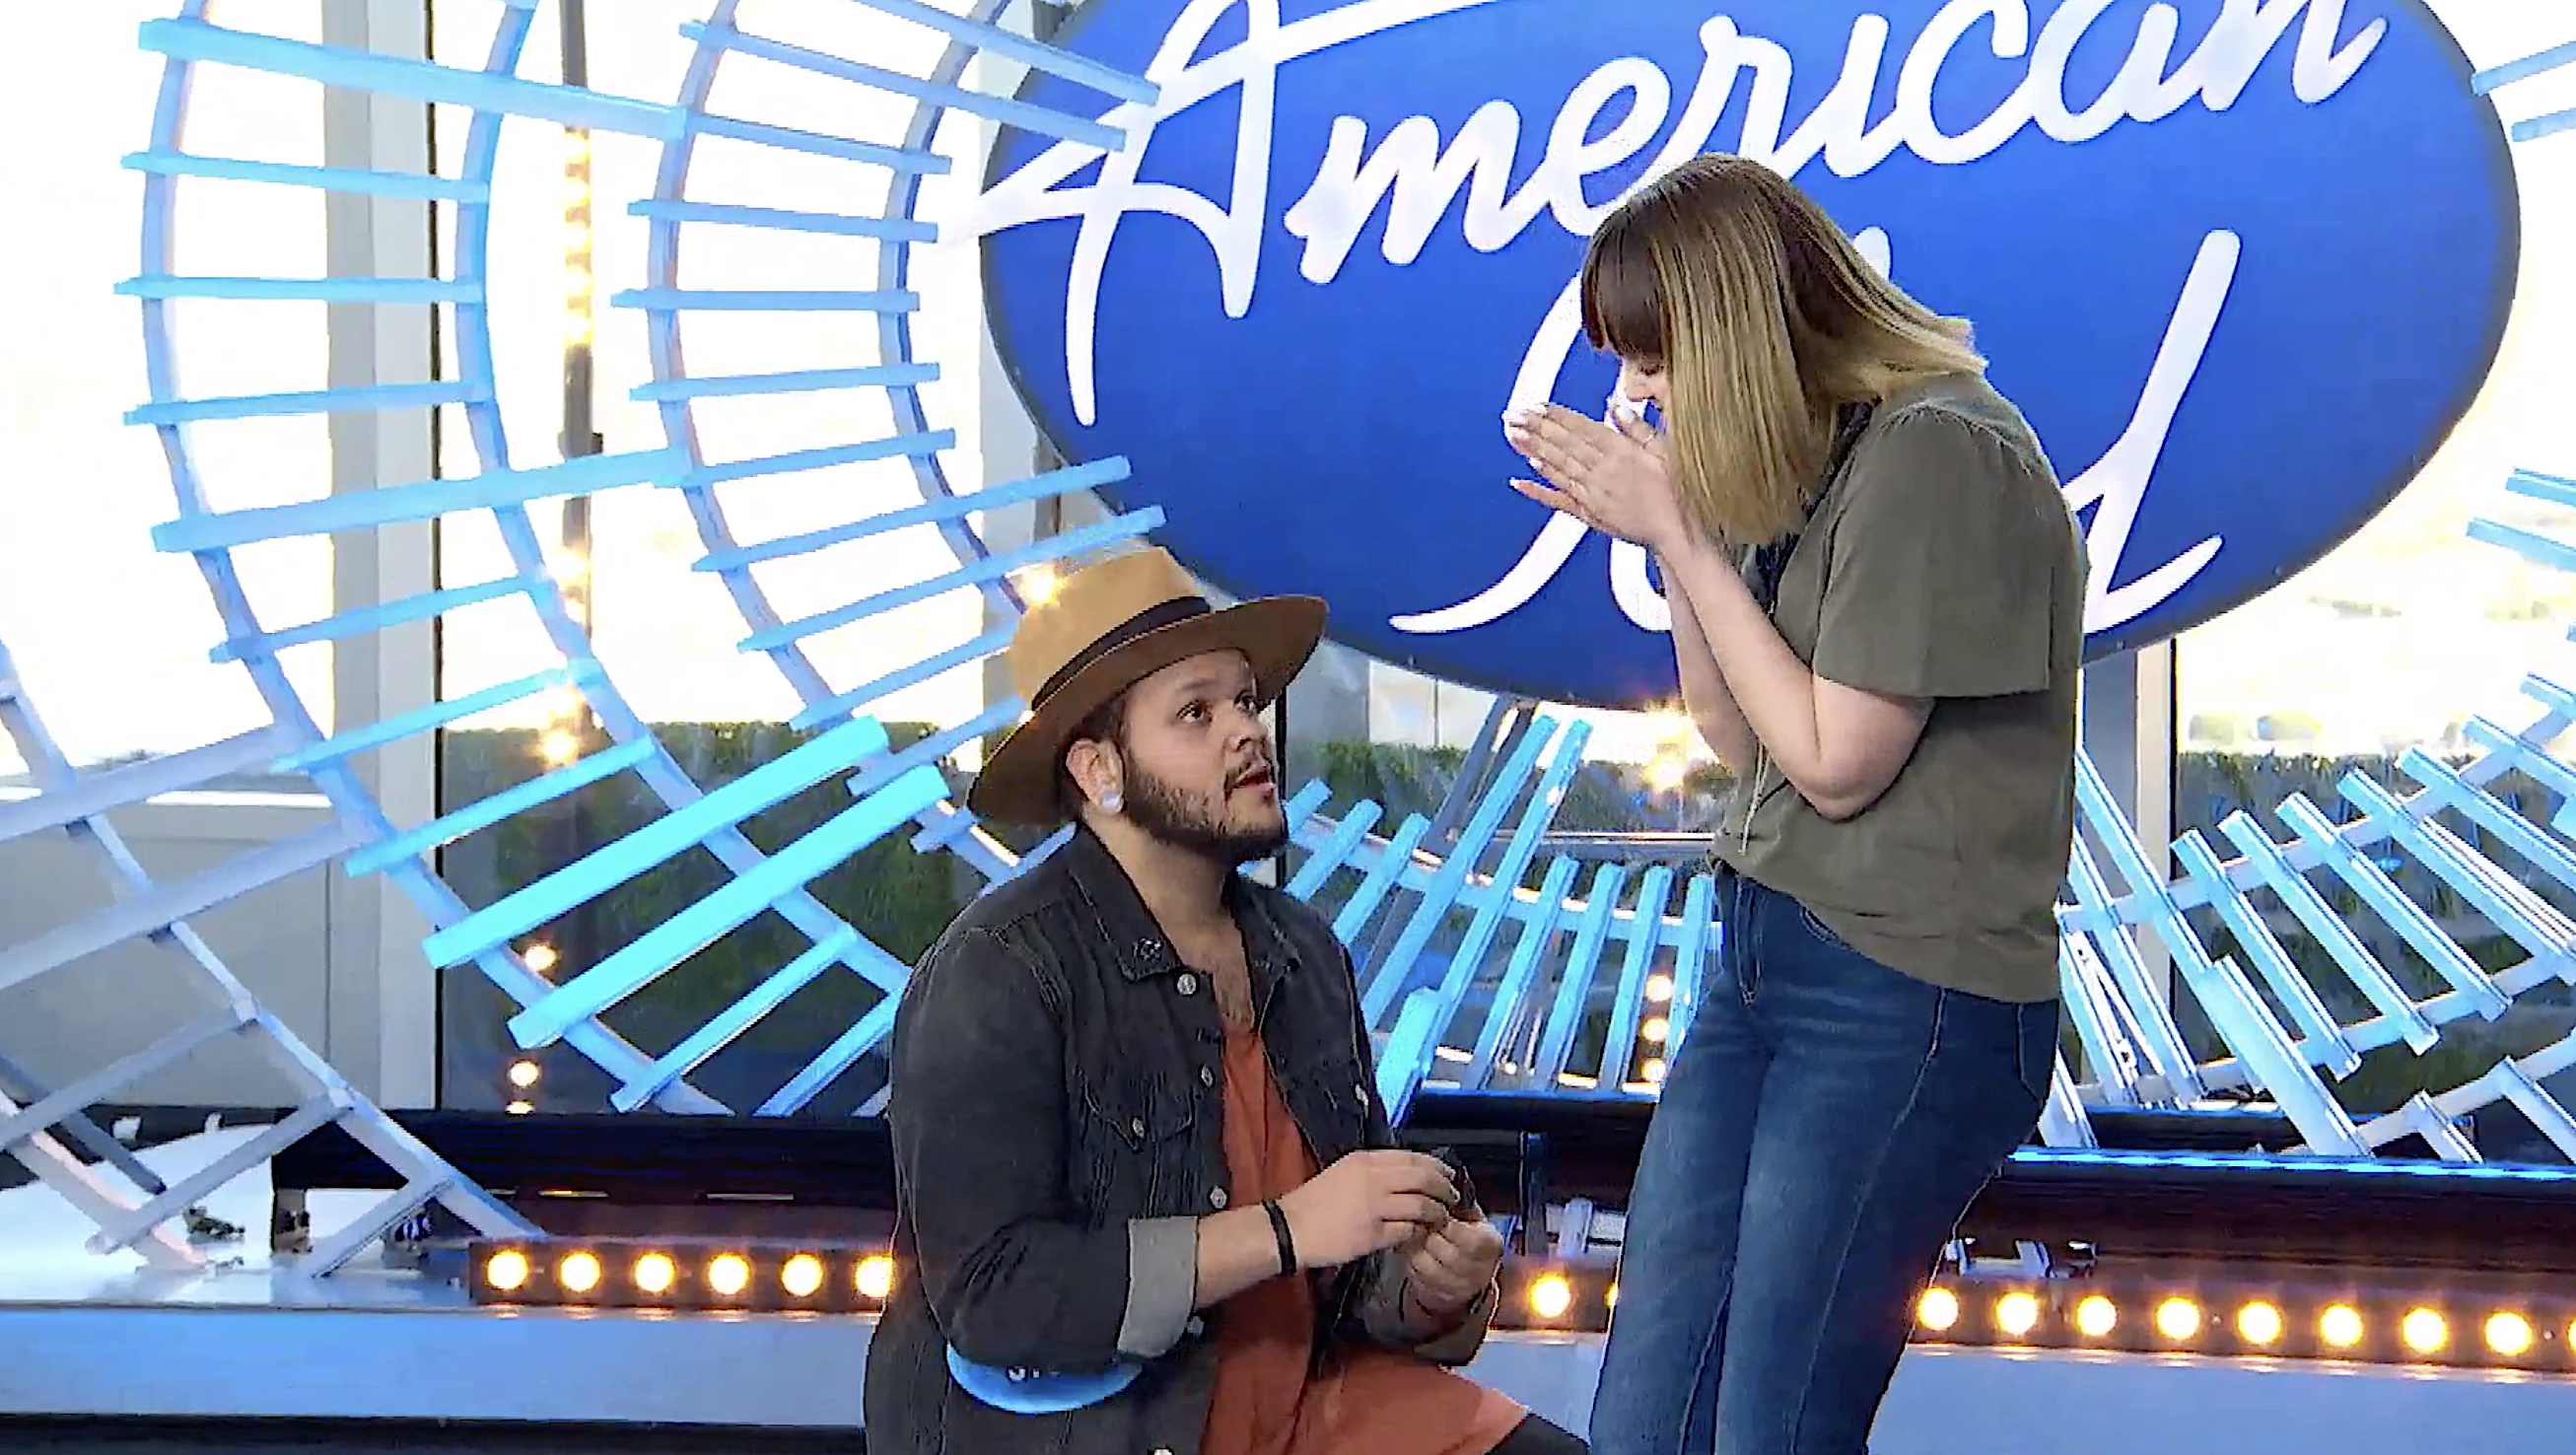 Jordan Jones pops the question on 'American Idol.' (Photo: ABC)